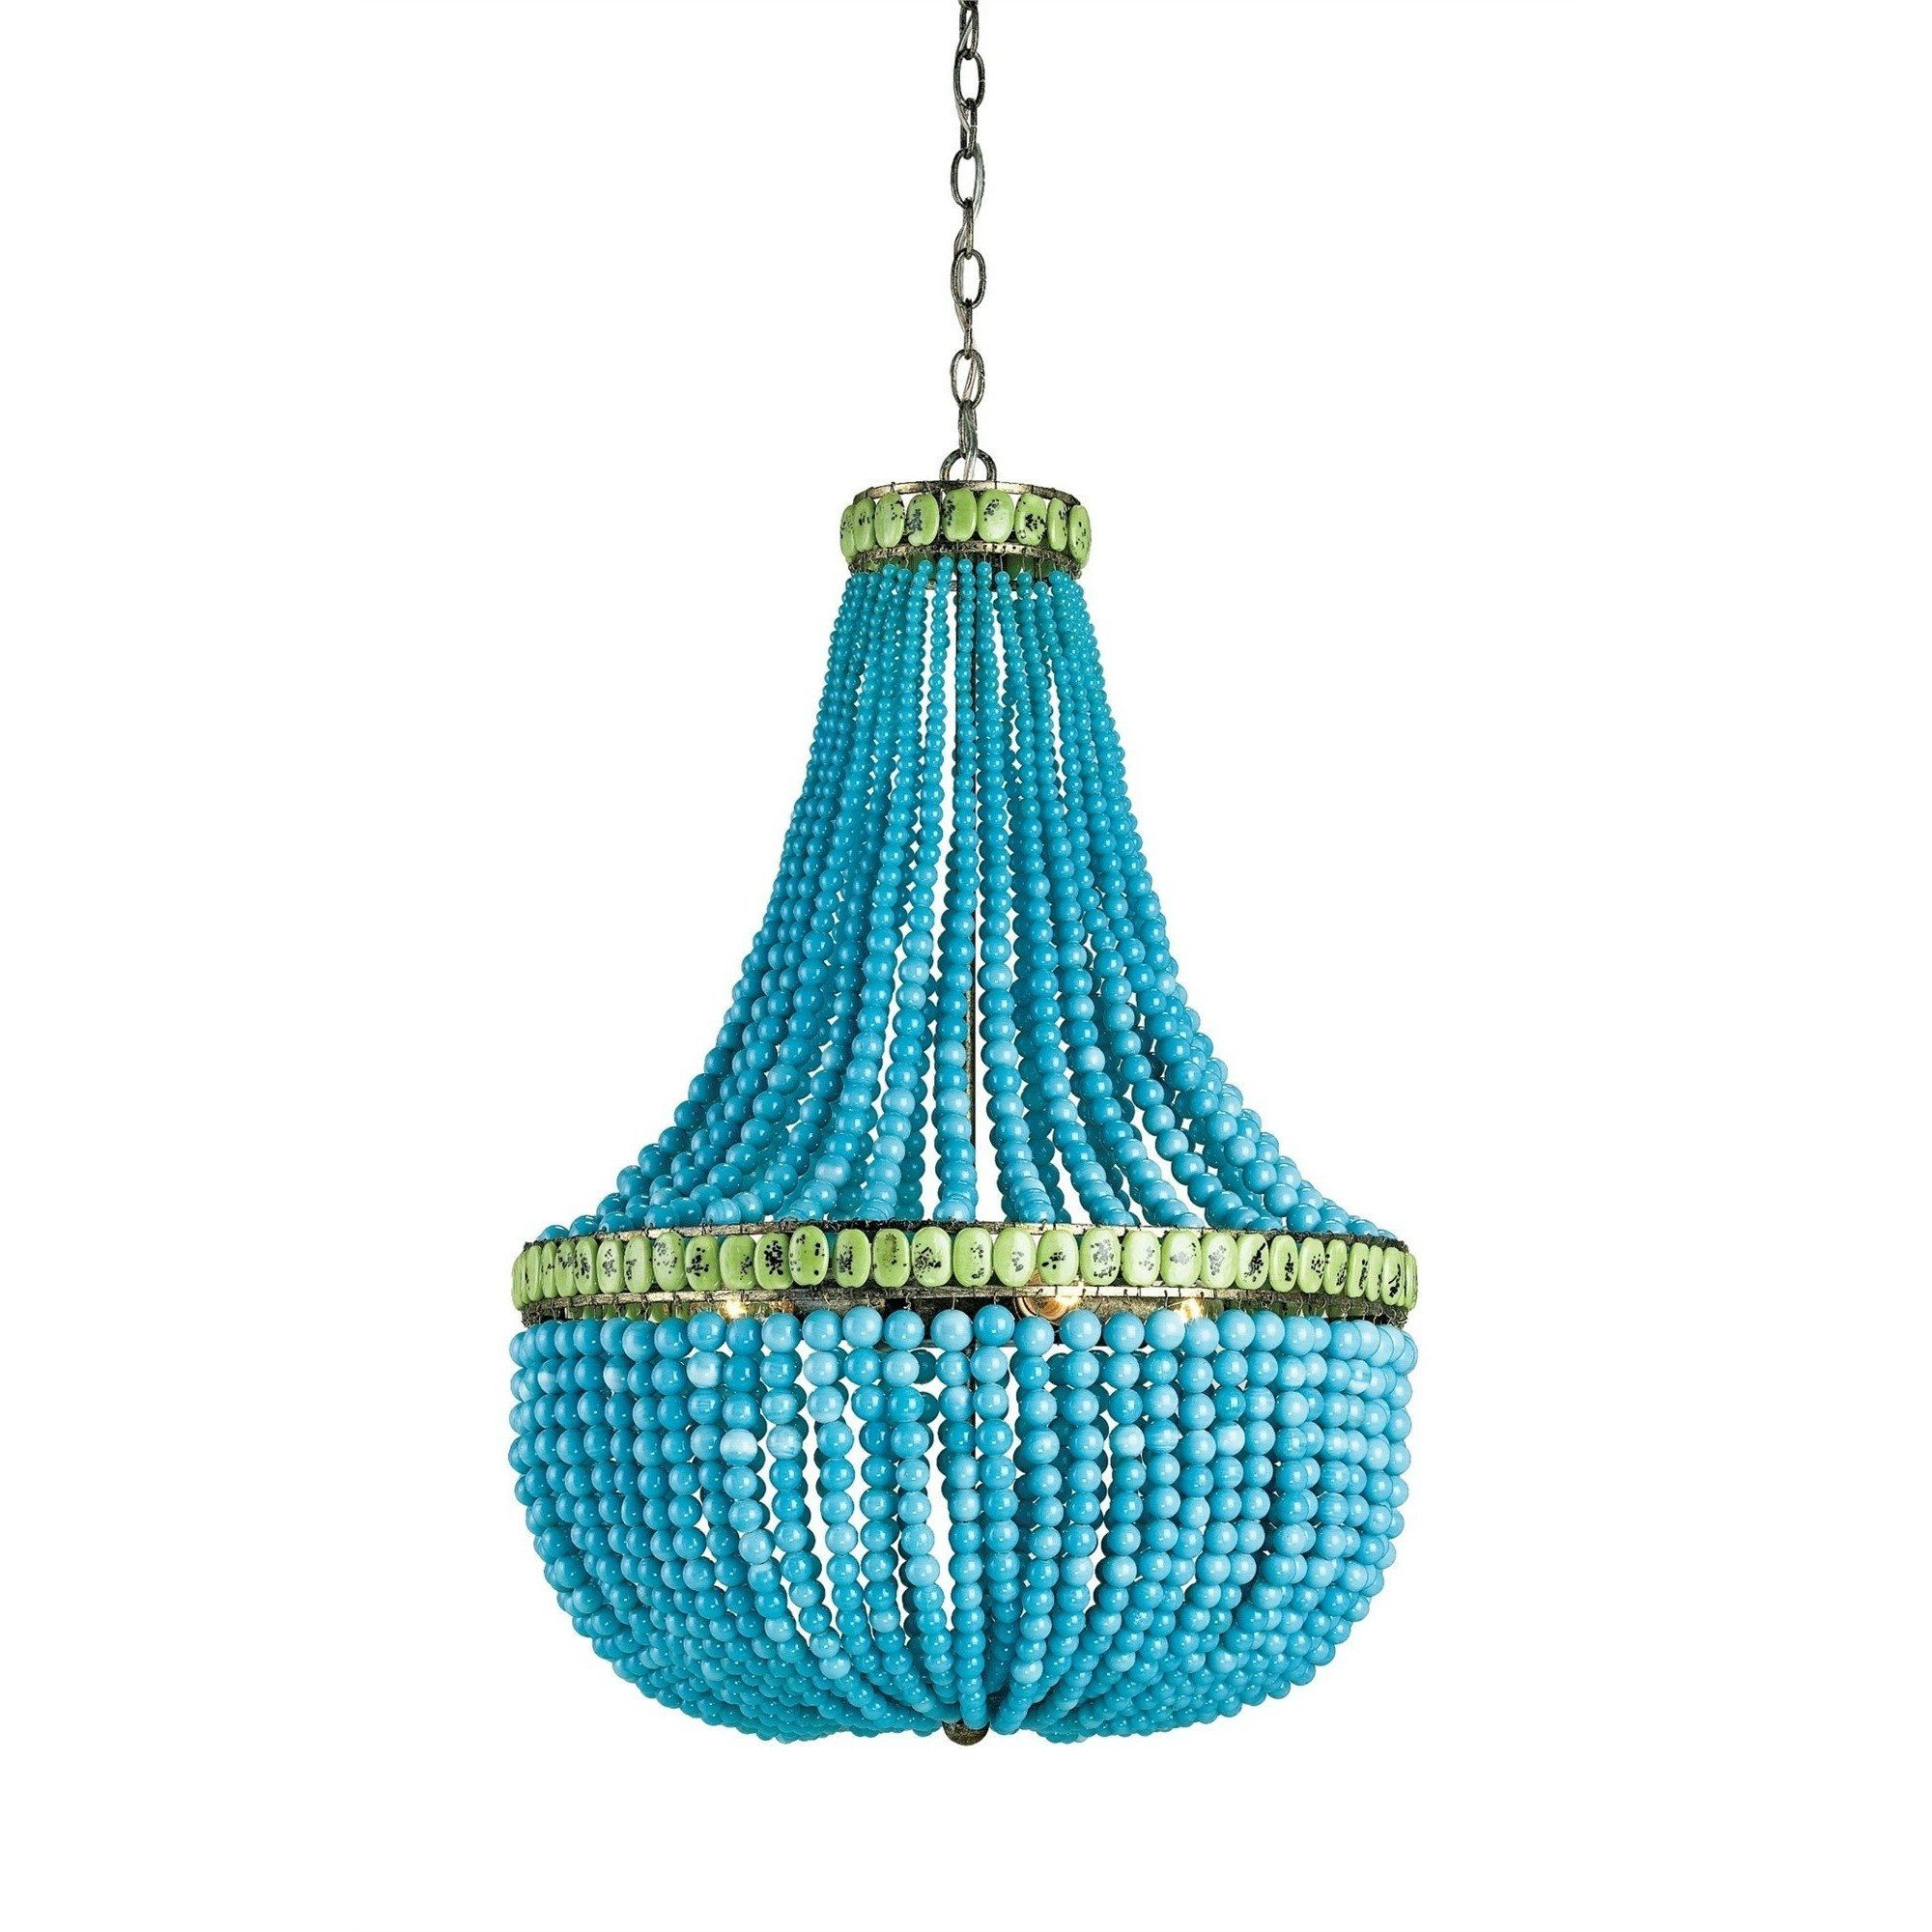 Currey and Company Hedy Chandelier 9770 - LOVECUP